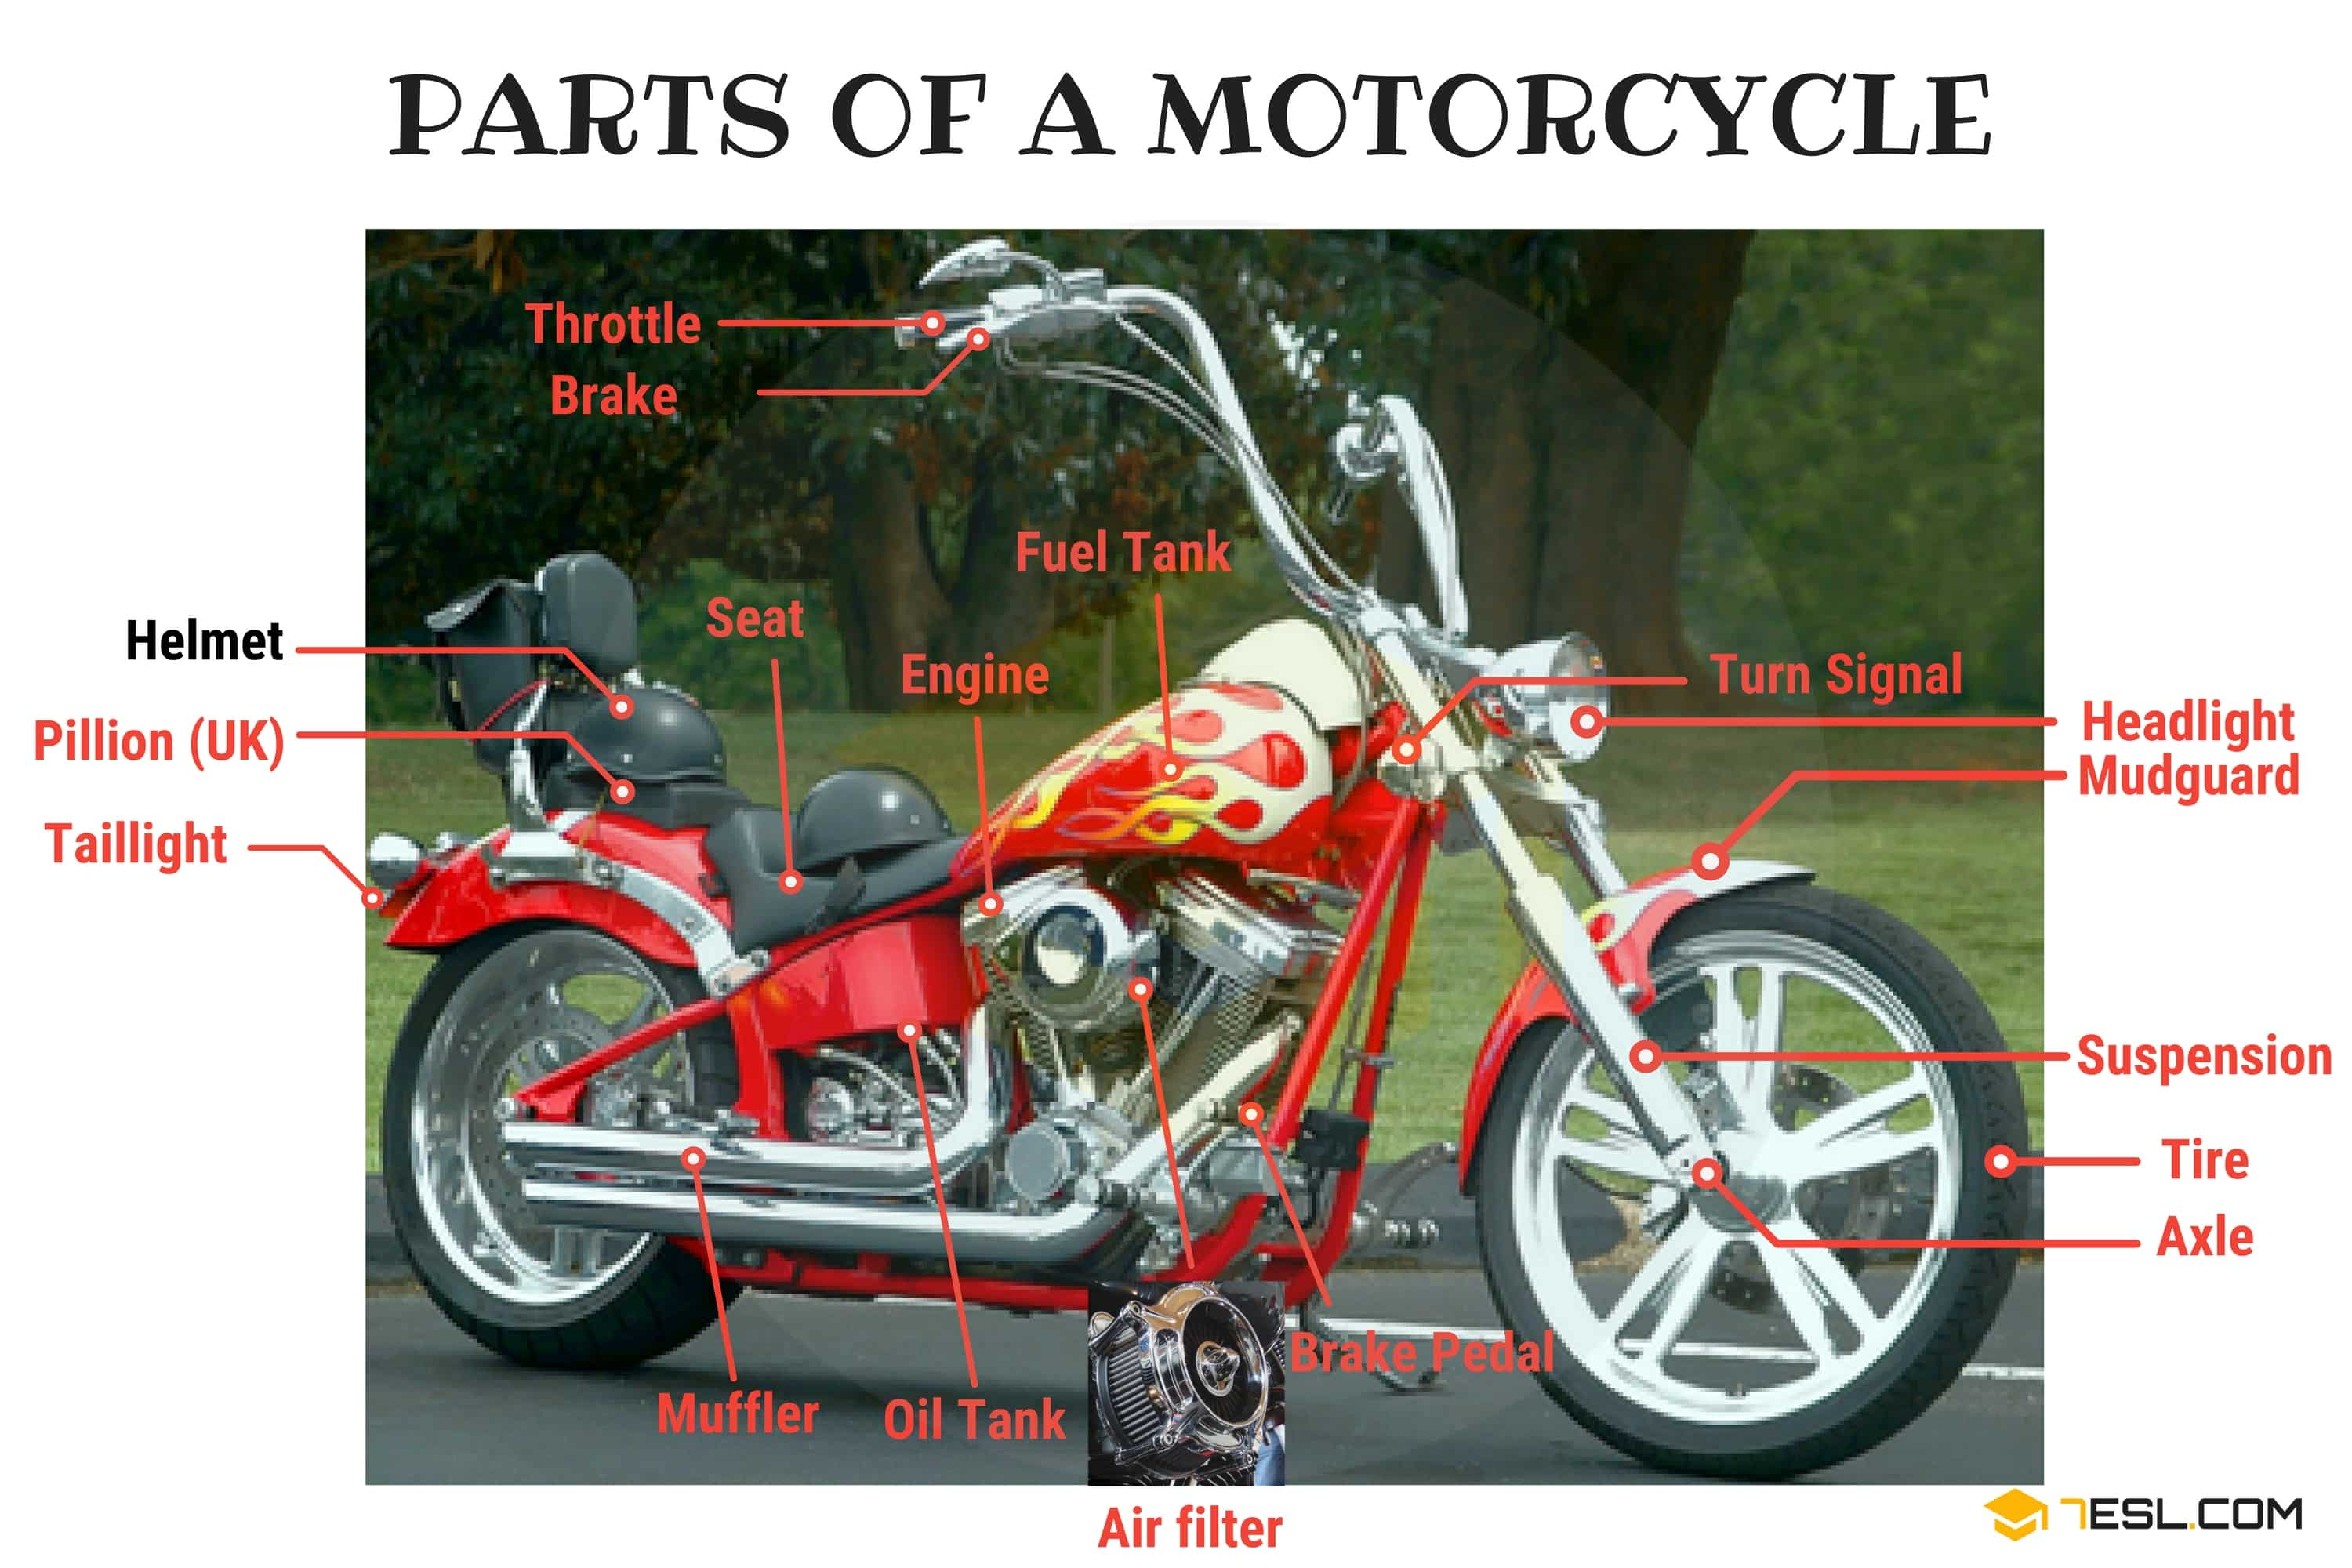 Motorcycle Parts: Useful Parts of a Motorcycle with Pictures